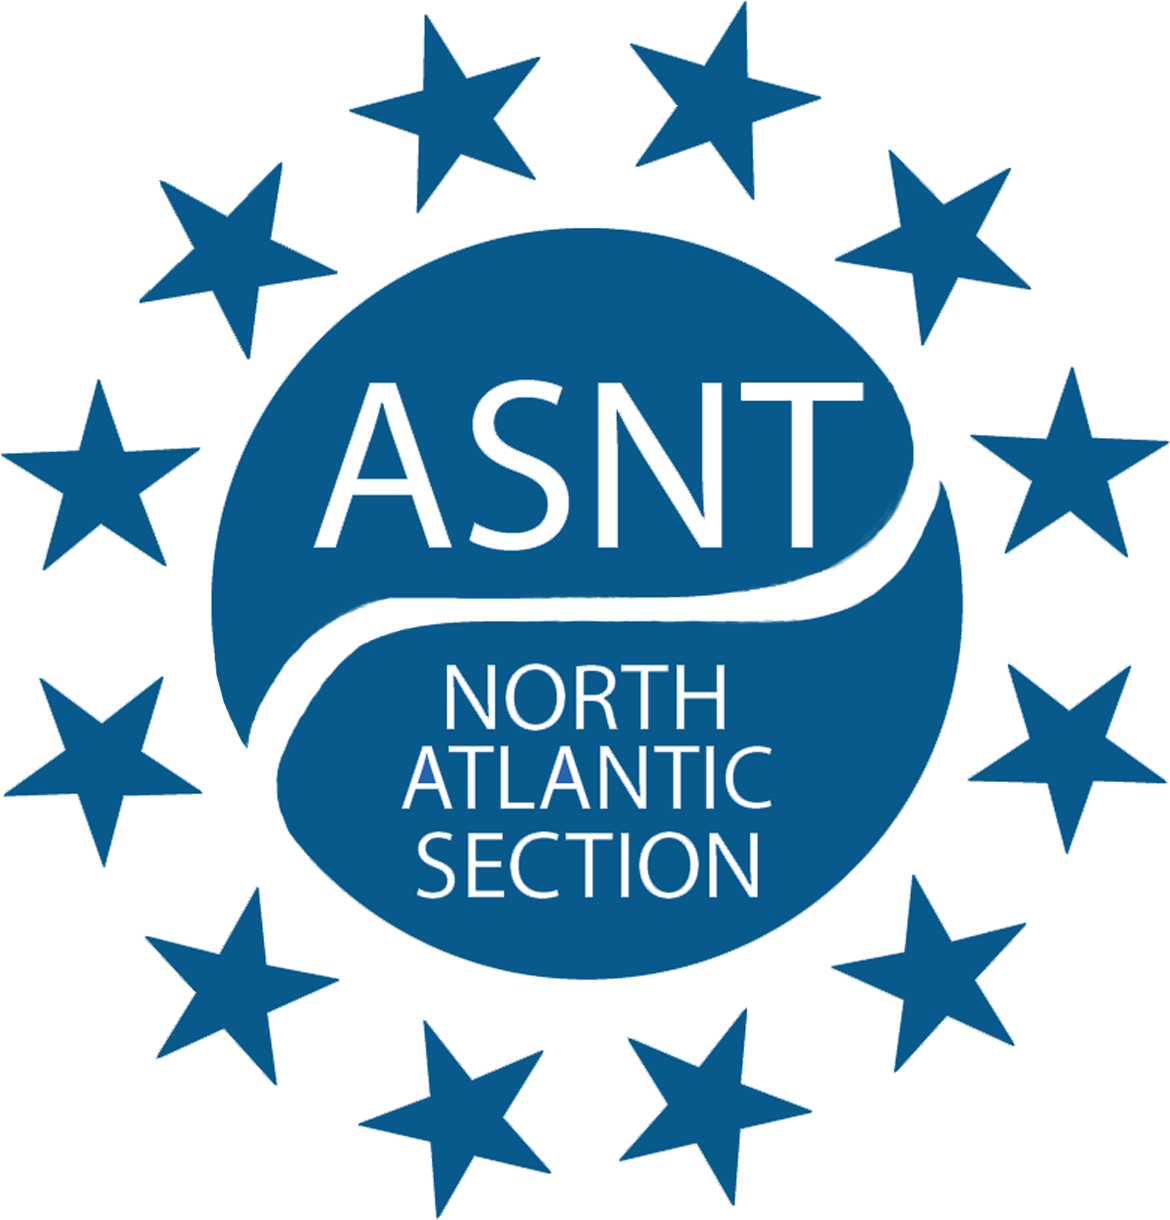 North Atlantic Section